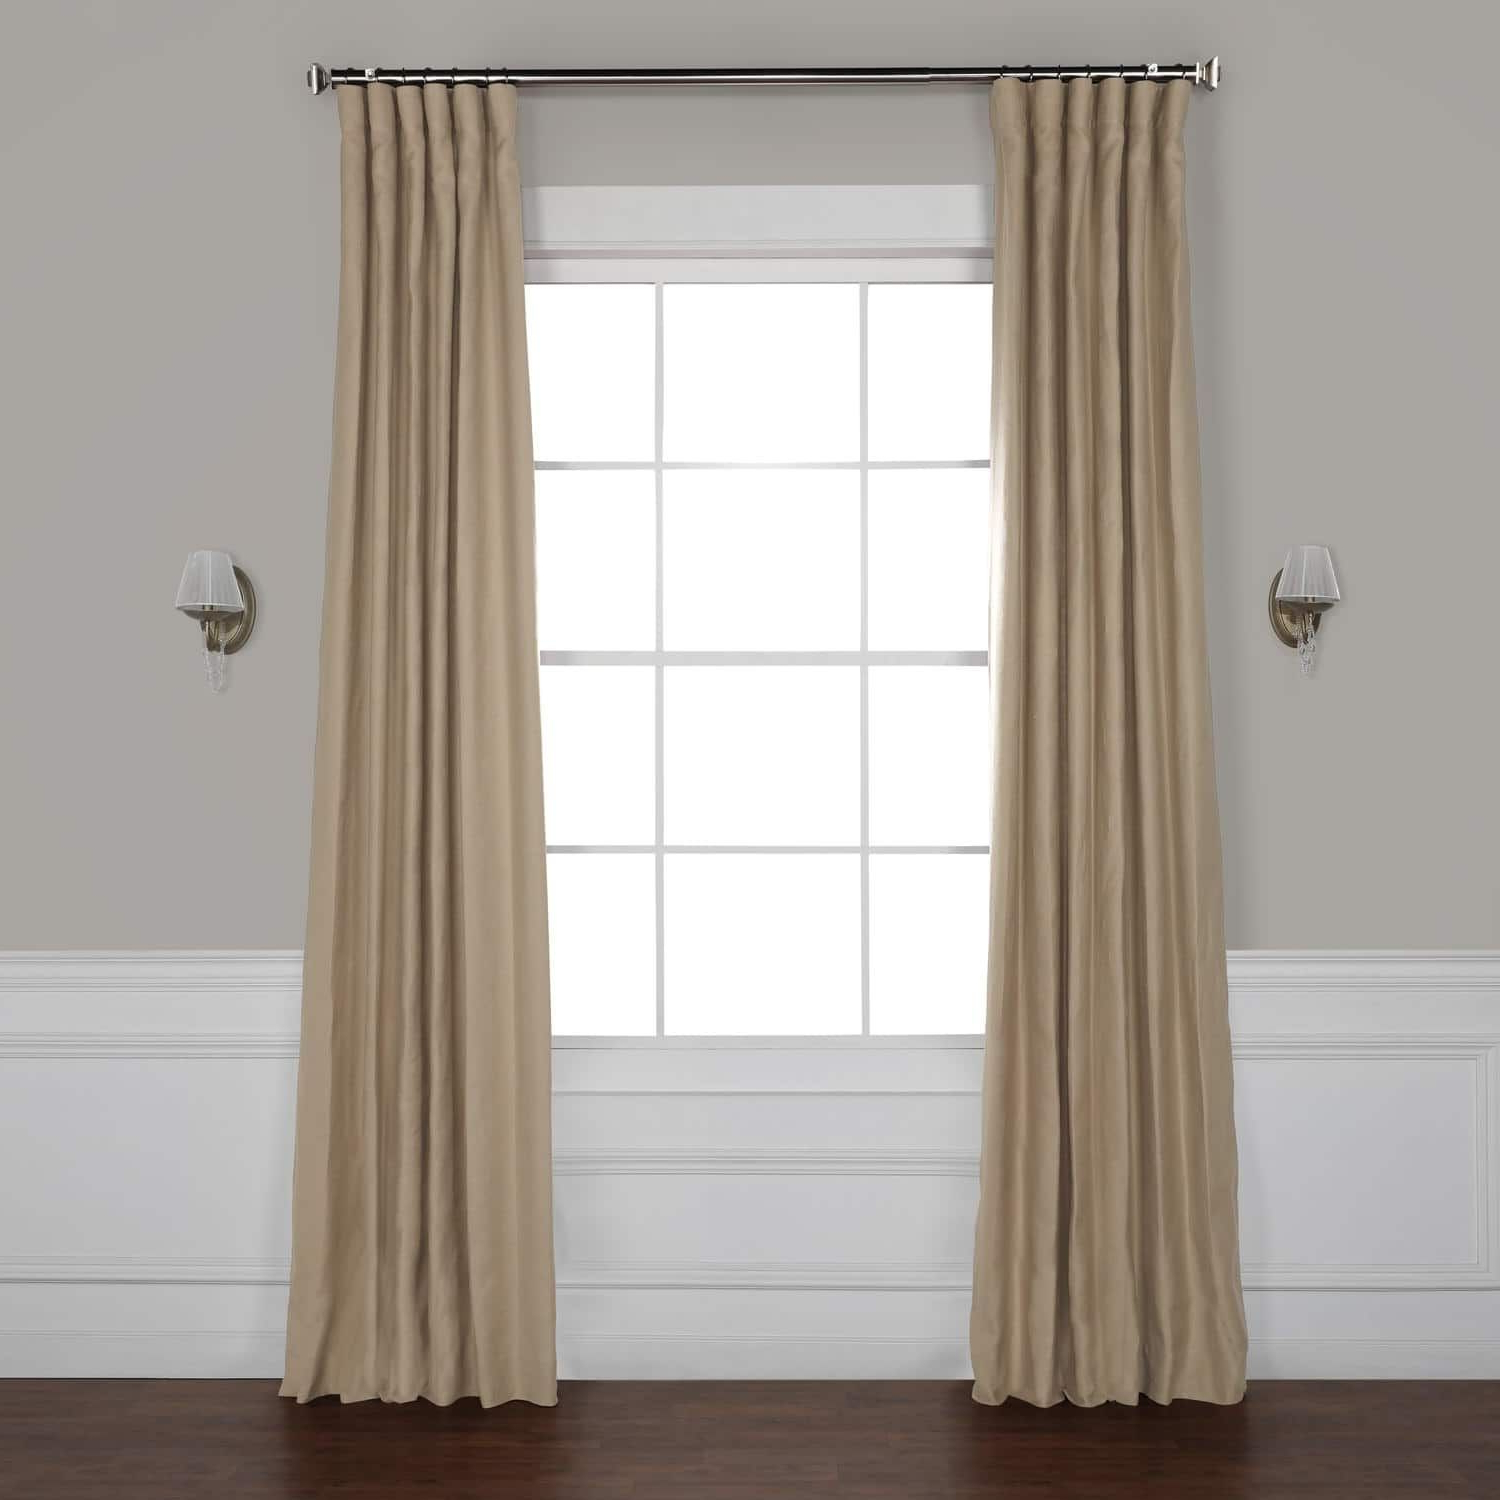 Exclusive Fabrics French Linen Lined Curtain Panel With Regard To Latest French Linen Lined Curtain Panels (View 6 of 20)